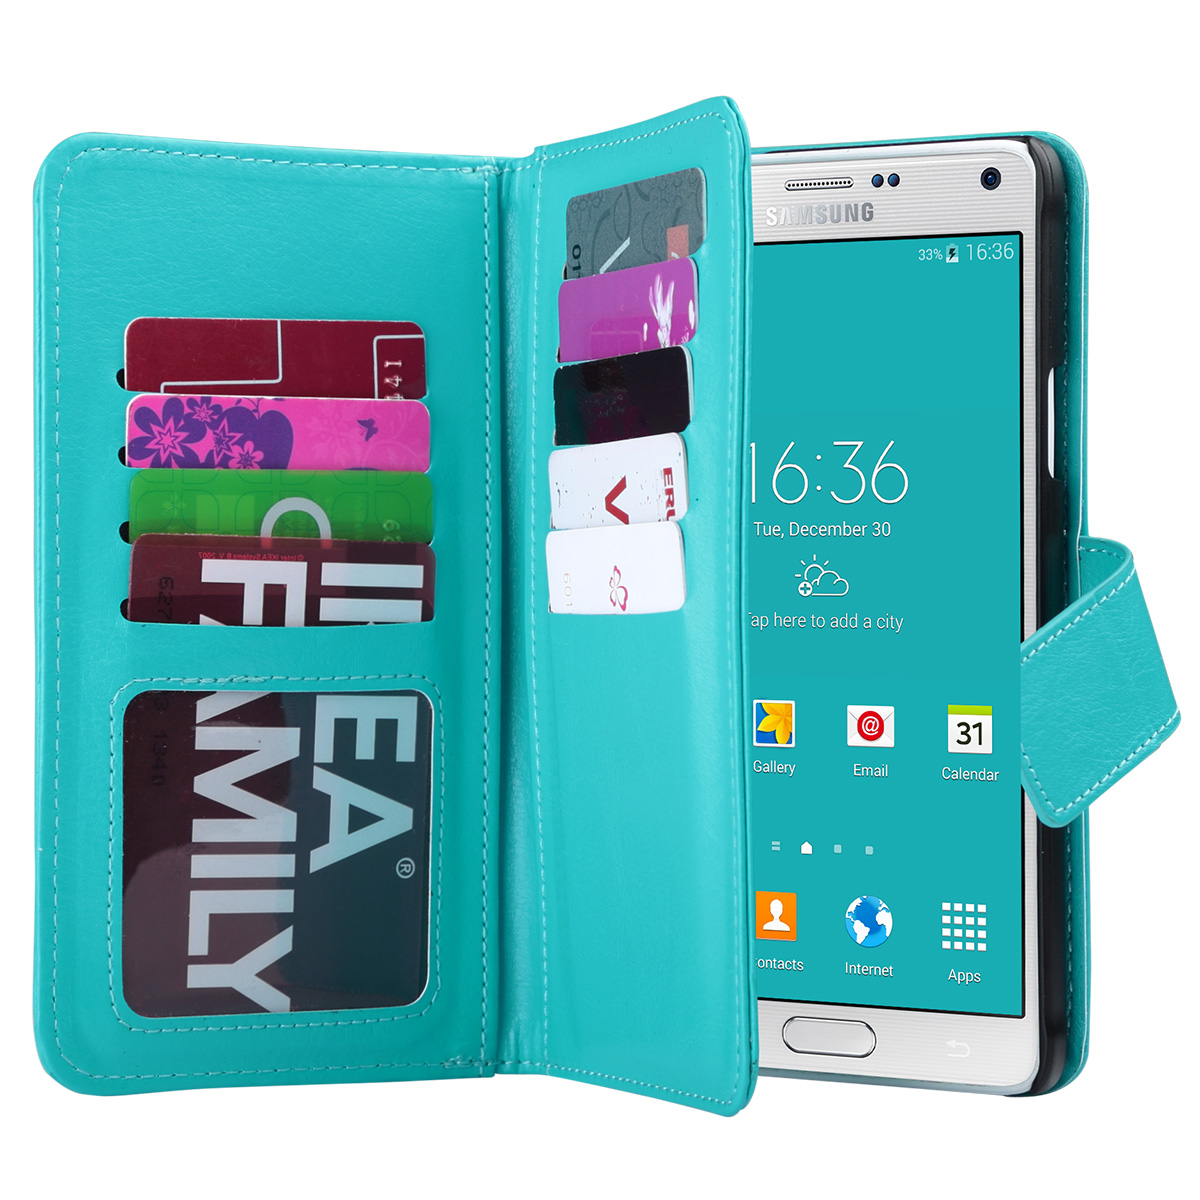 Note 4 Case, Galaxy Note 4 Case, ULAK Galaxy Note 4 Wallet Case,Pu Leather Case Magnet Wallet Credit Card Holder Flip Cover Case Built-in 9 Card Slots & Stand Case for Samsung Galaxy Note 4